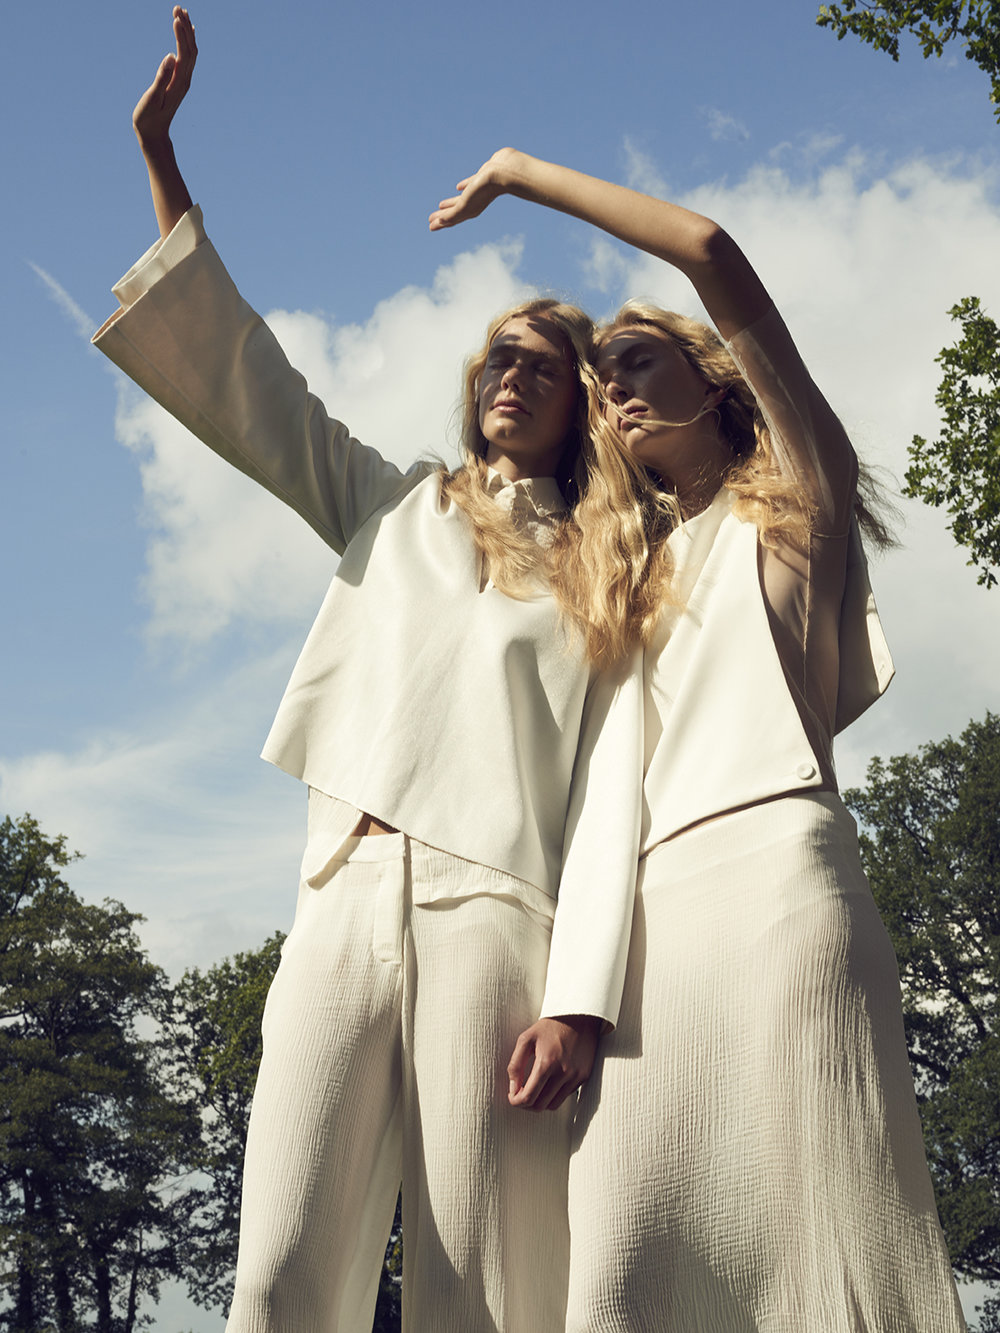 PHOTOGRAPHY  Jasper Abels | MUAH Magdalena Looza | MODELS Femke & Merel @ Tjarda model management en Nikita @ Bloom Management